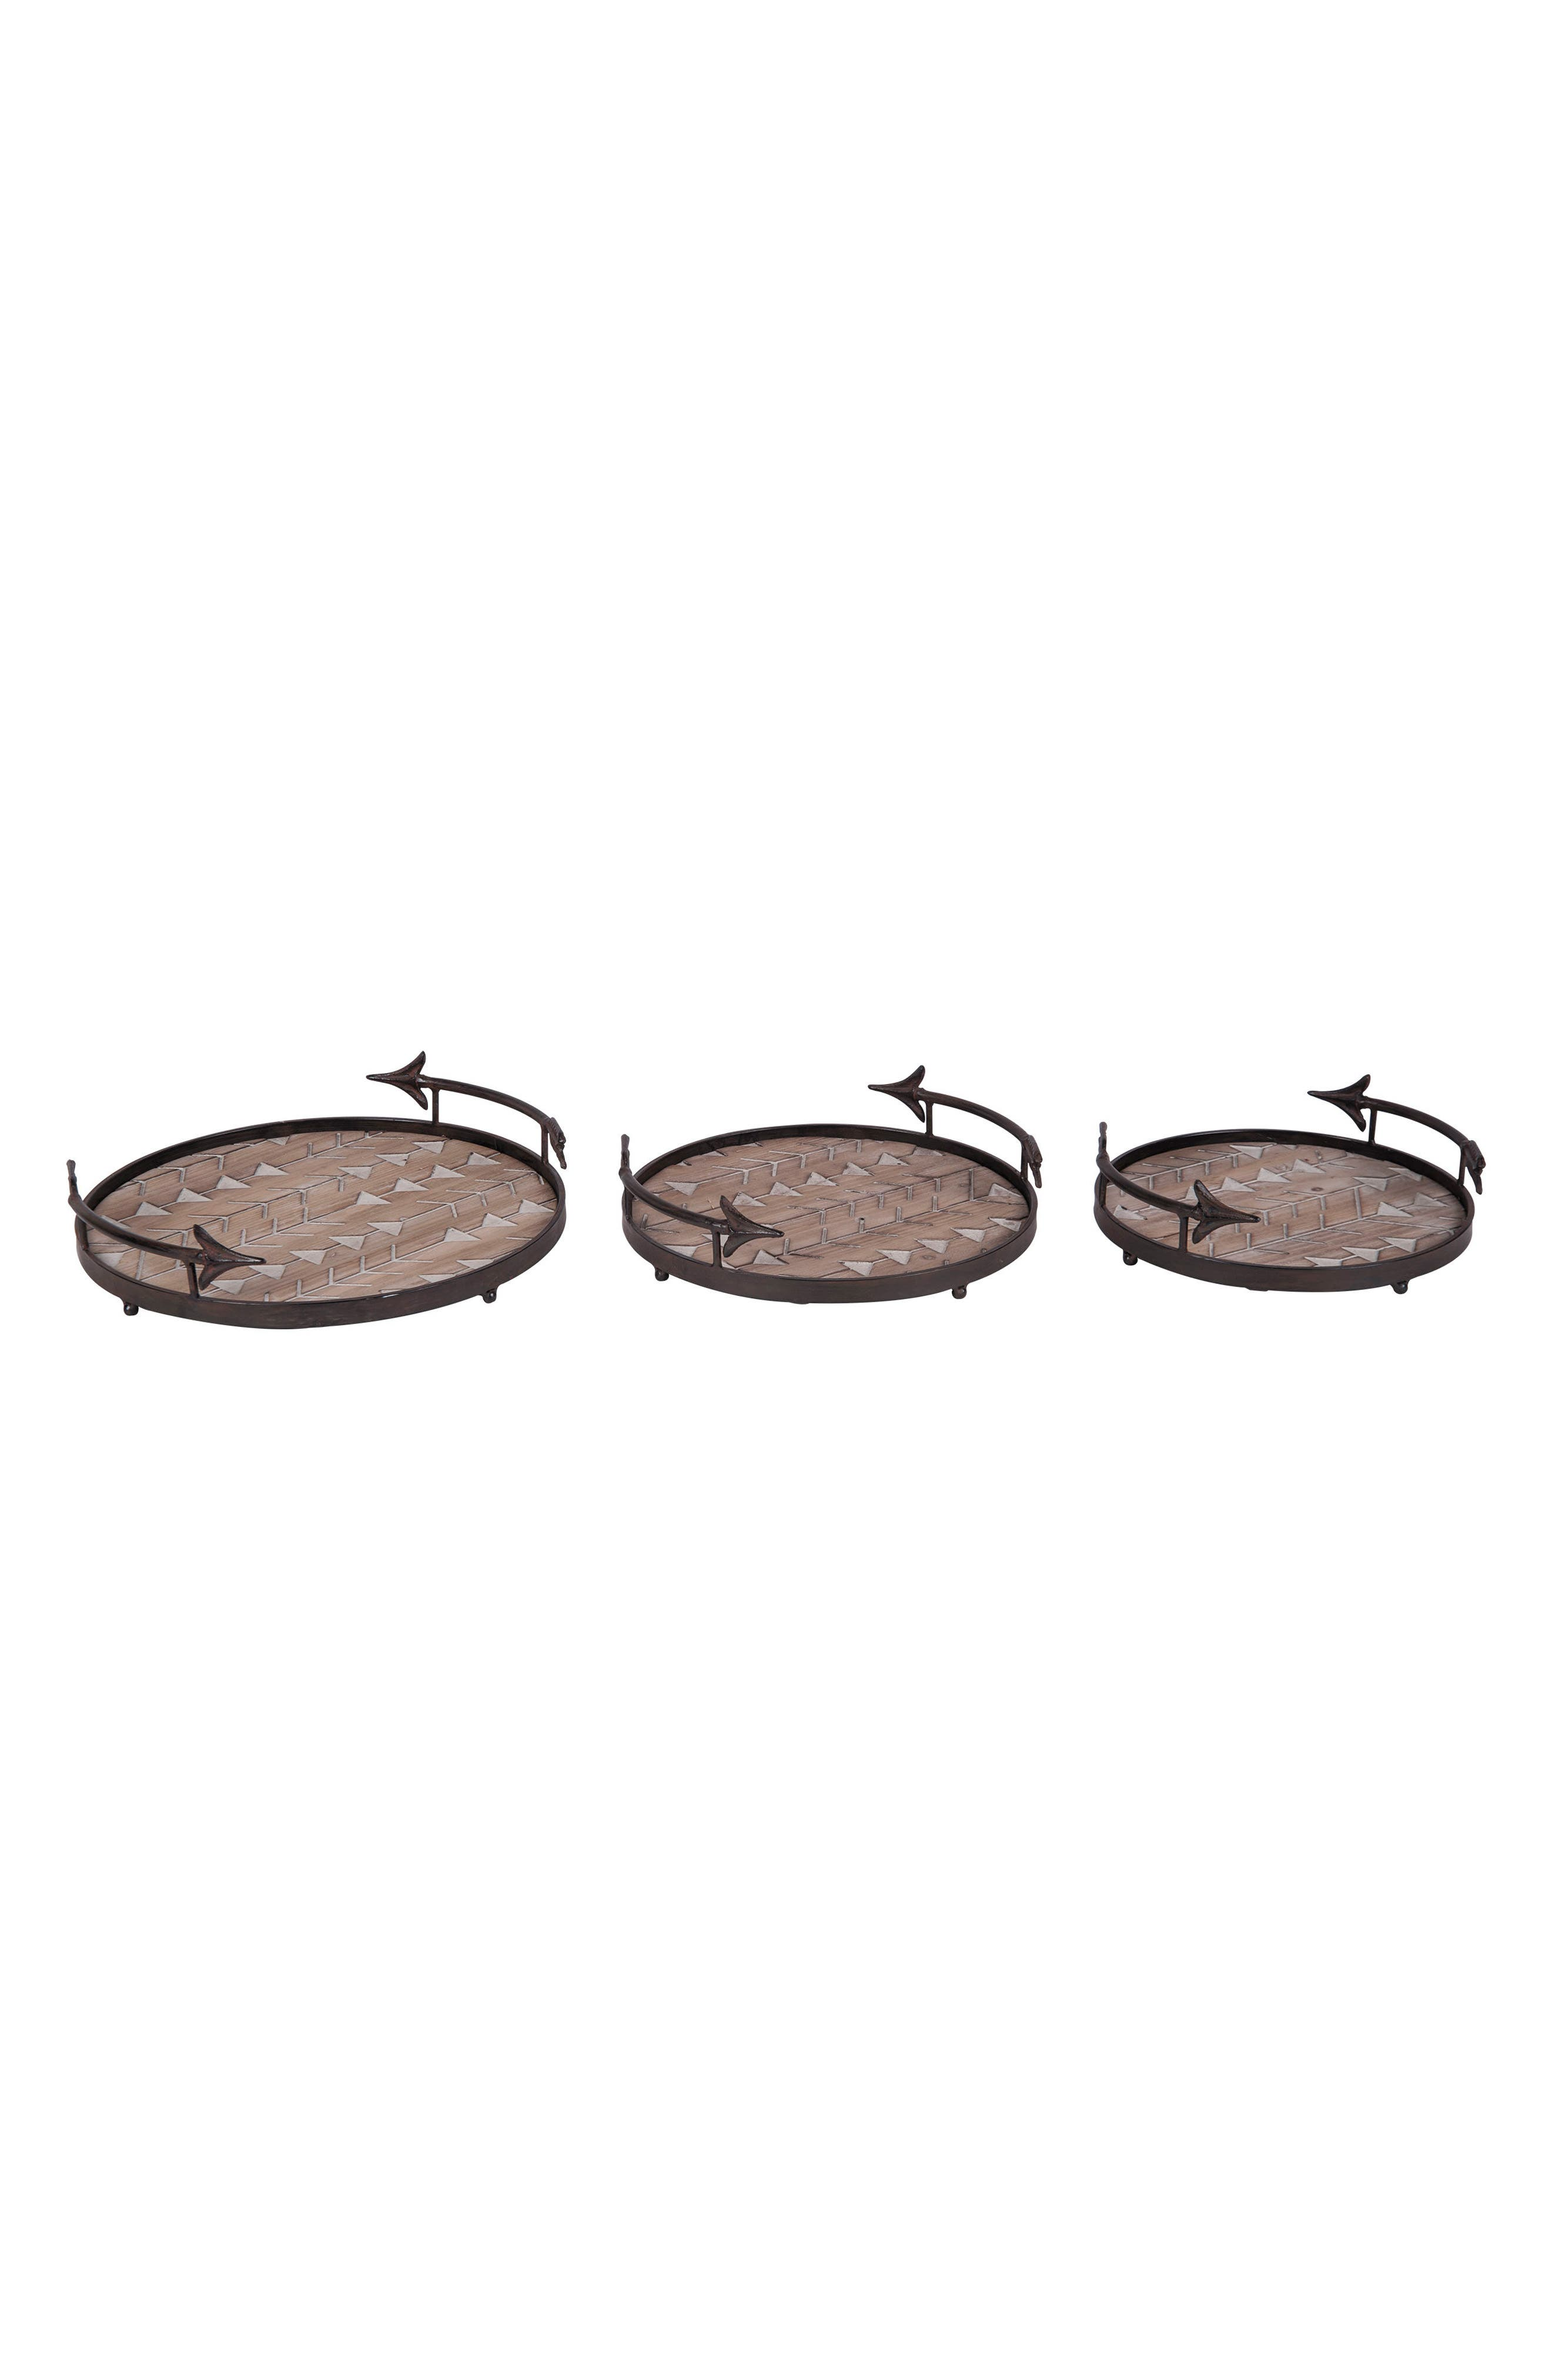 Foreside Arrow Set of 3 Nesting Trays